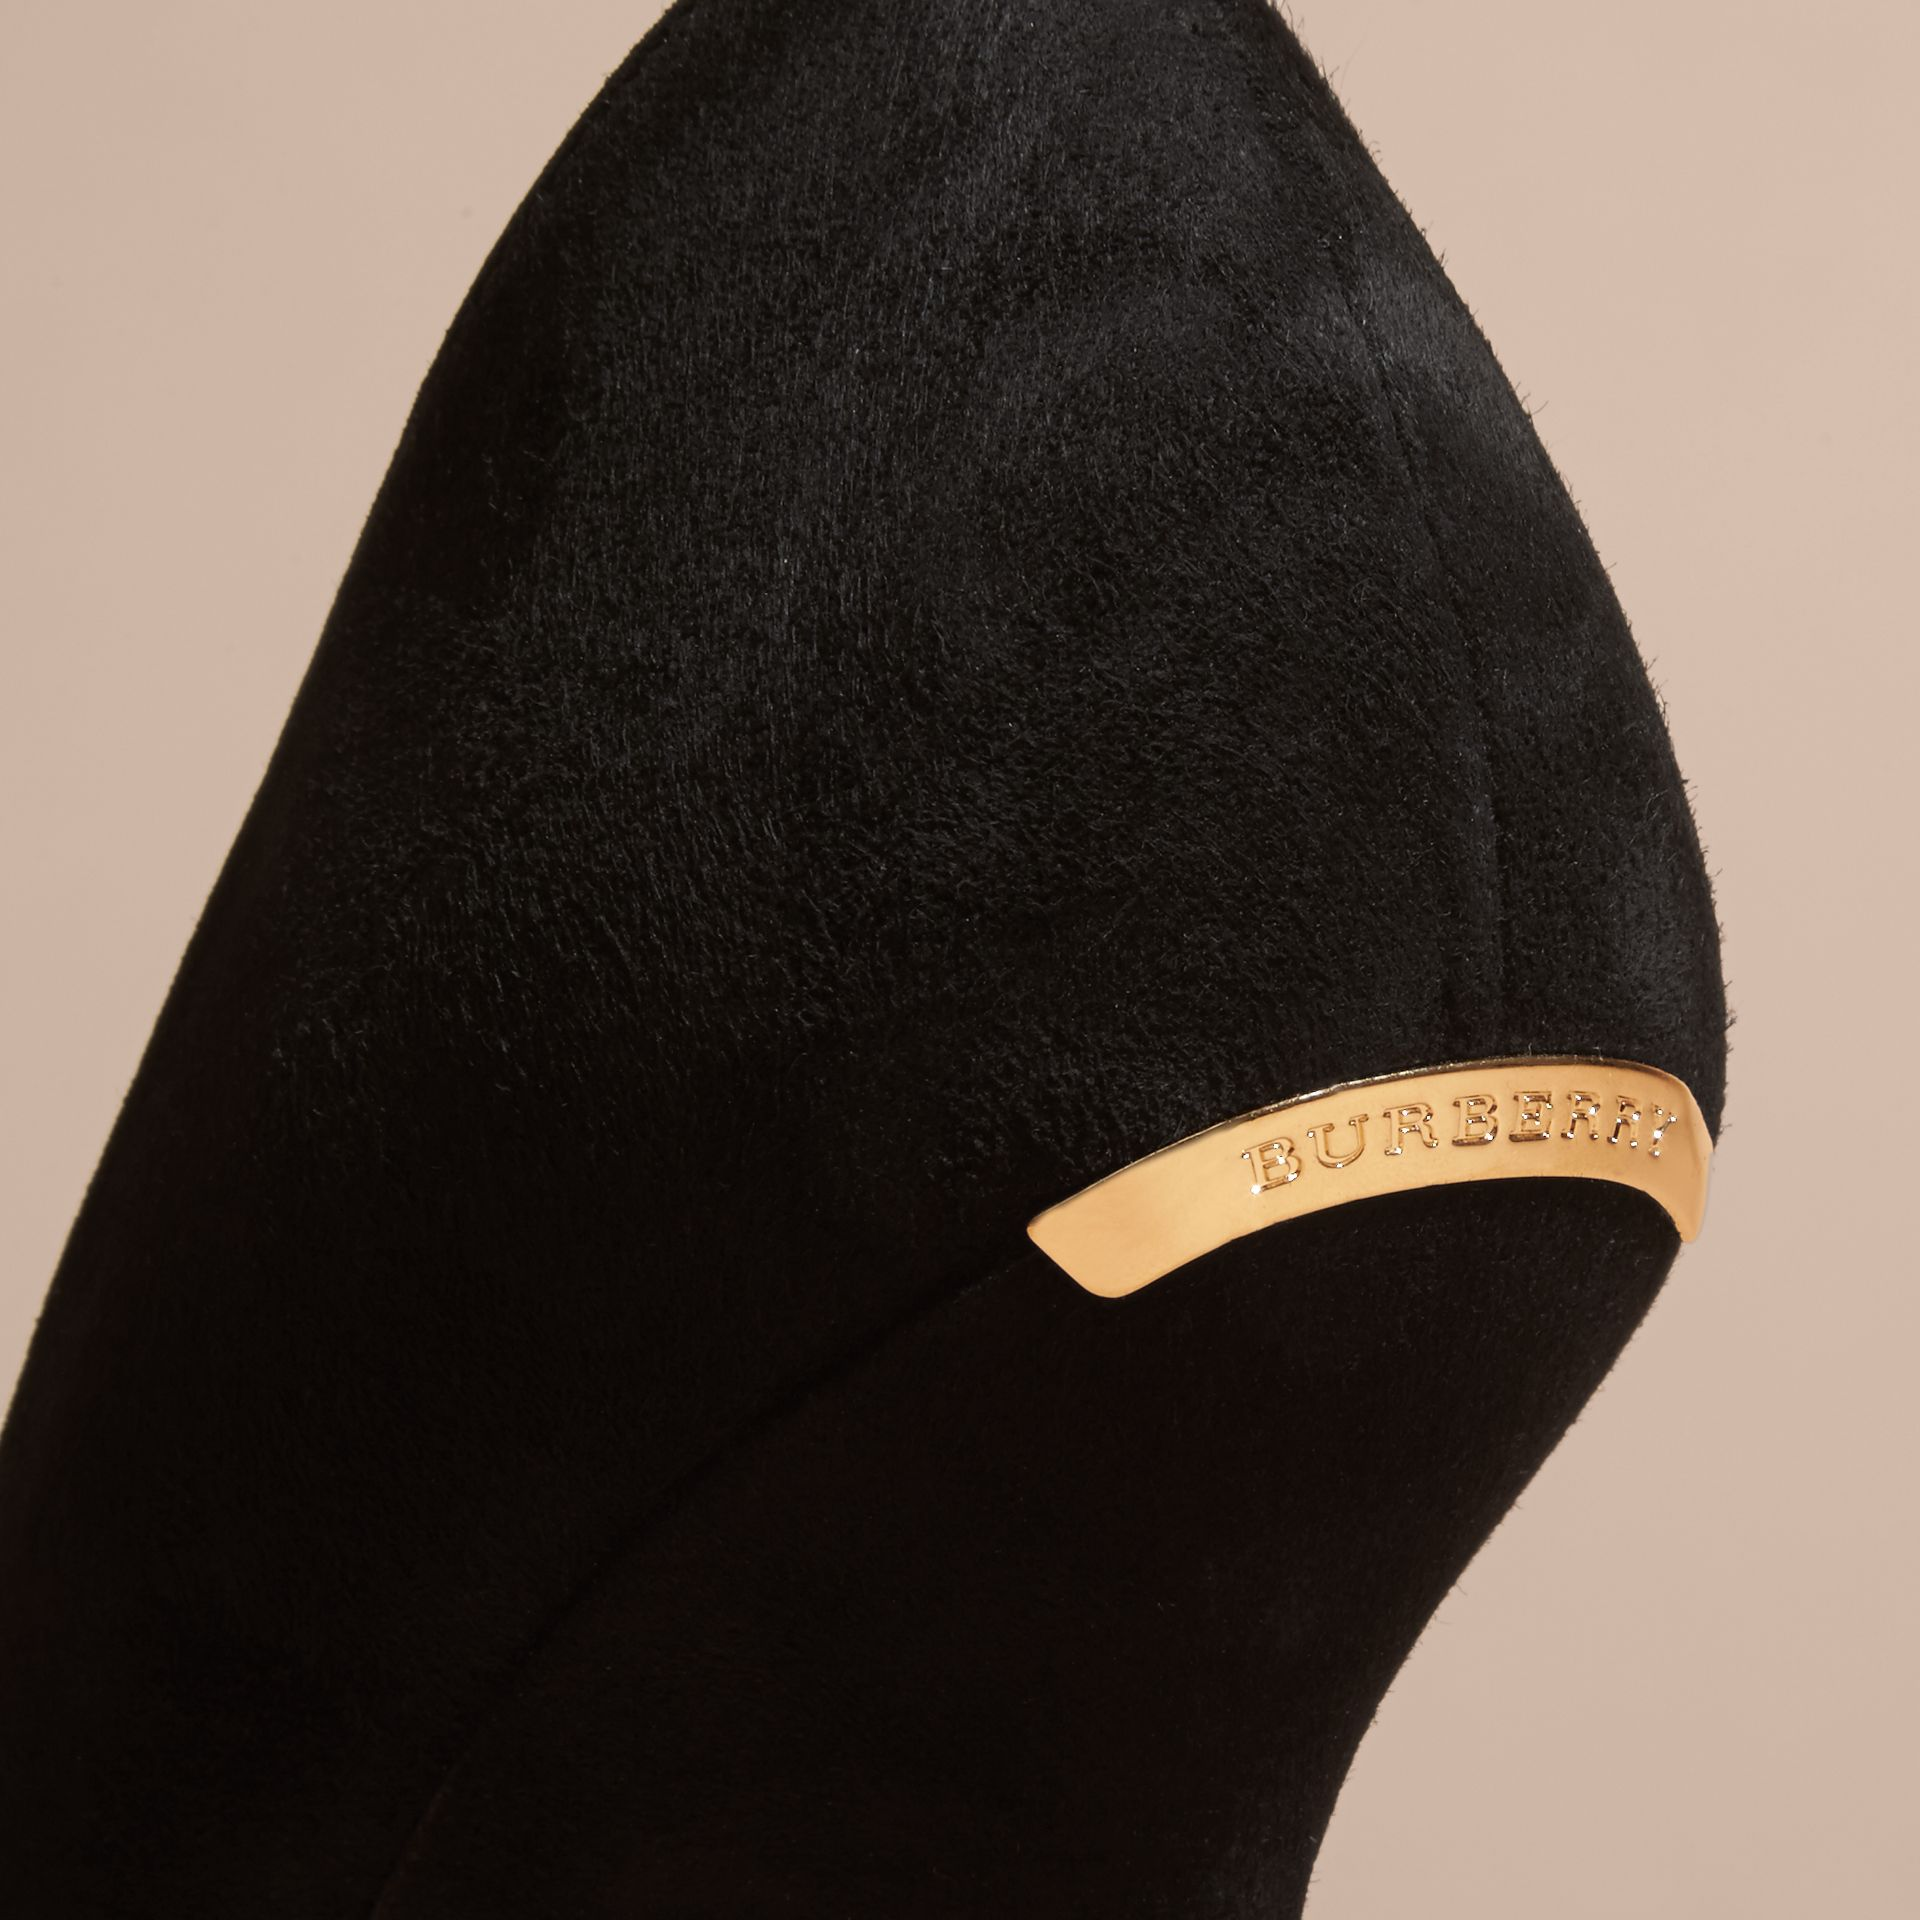 Point-toe Suede D'Orsay Pumps - gallery image 2